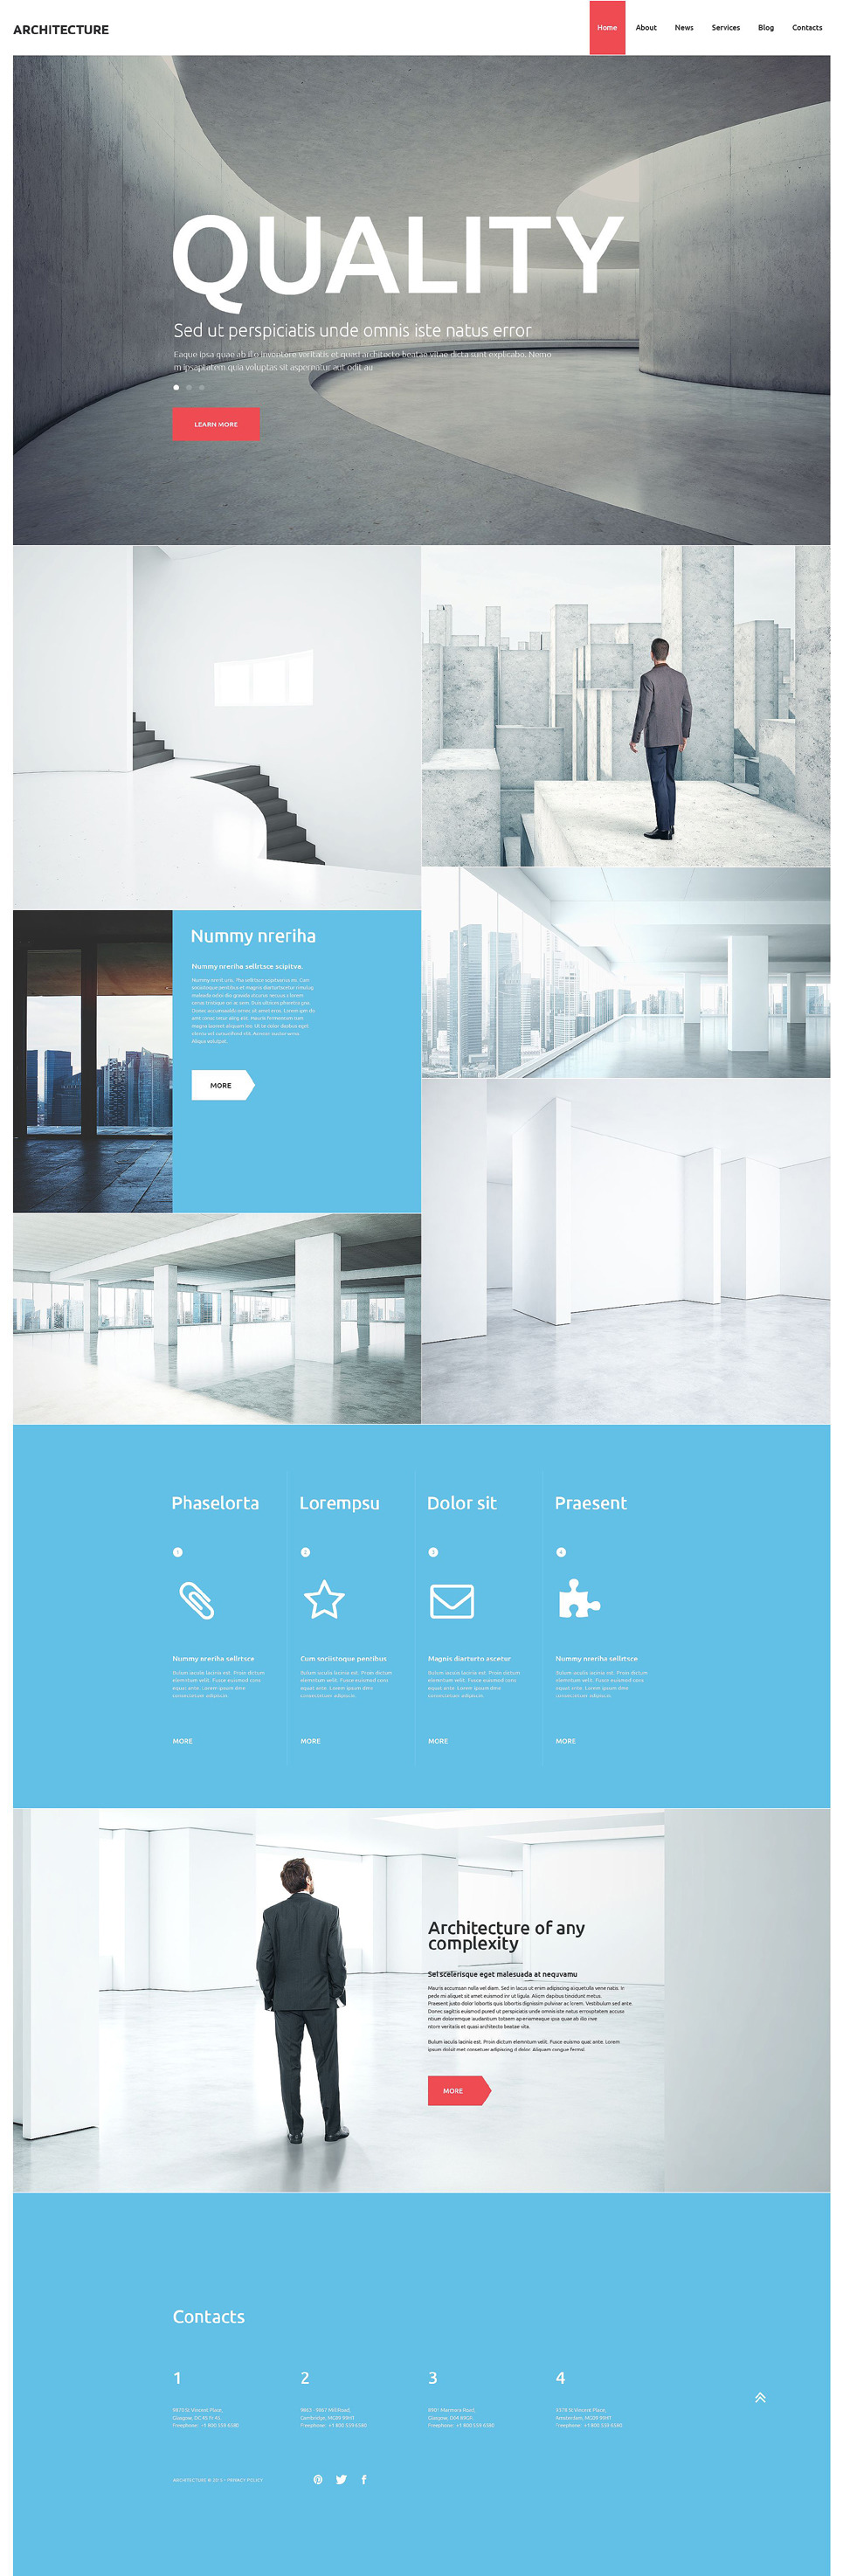 Architecture Studio WordPress Theme New Screenshots BIG